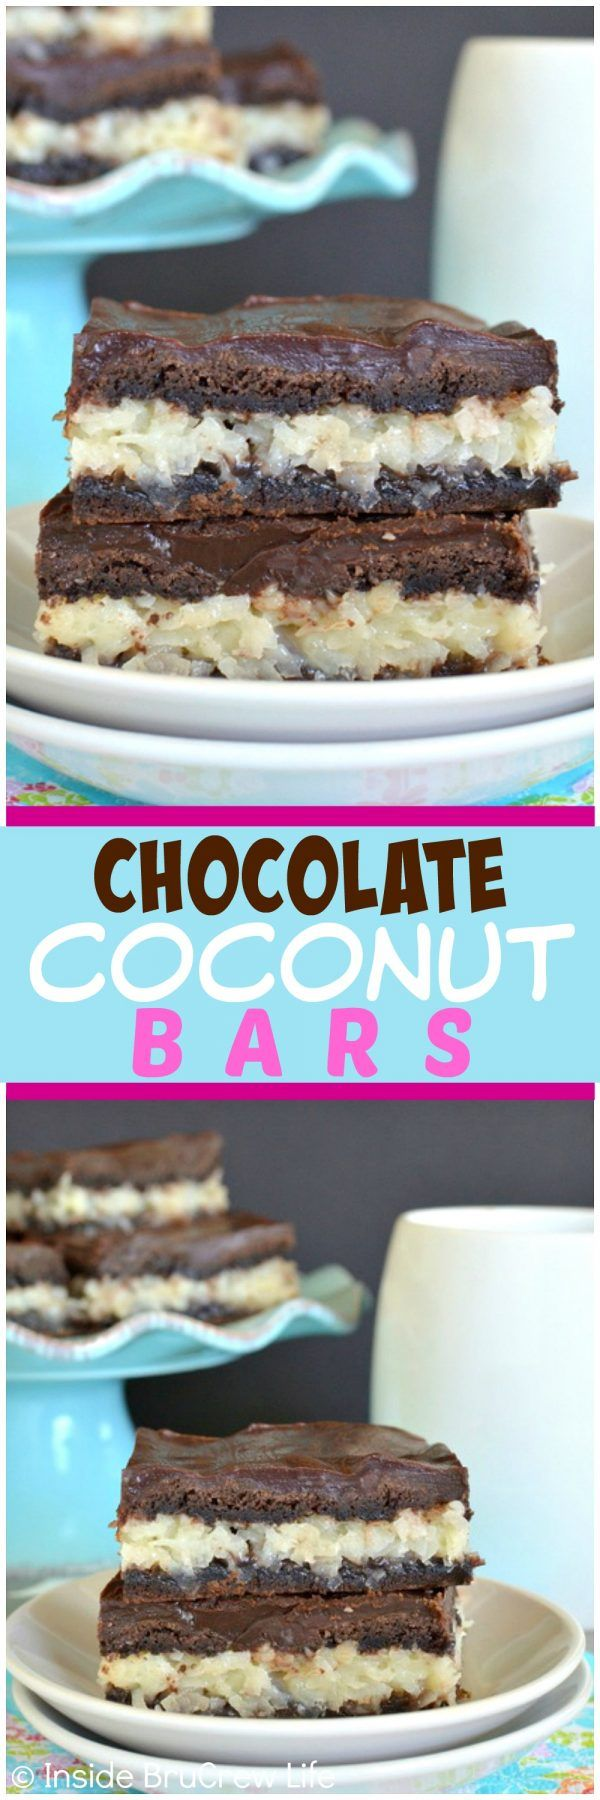 Chocolate Coconut Bars - these easy bars have a creamy coconut filling, chocolate crust, and chocolate glaze!  Easy dessert recipe for spring! (Coconut Dessert Recipes)